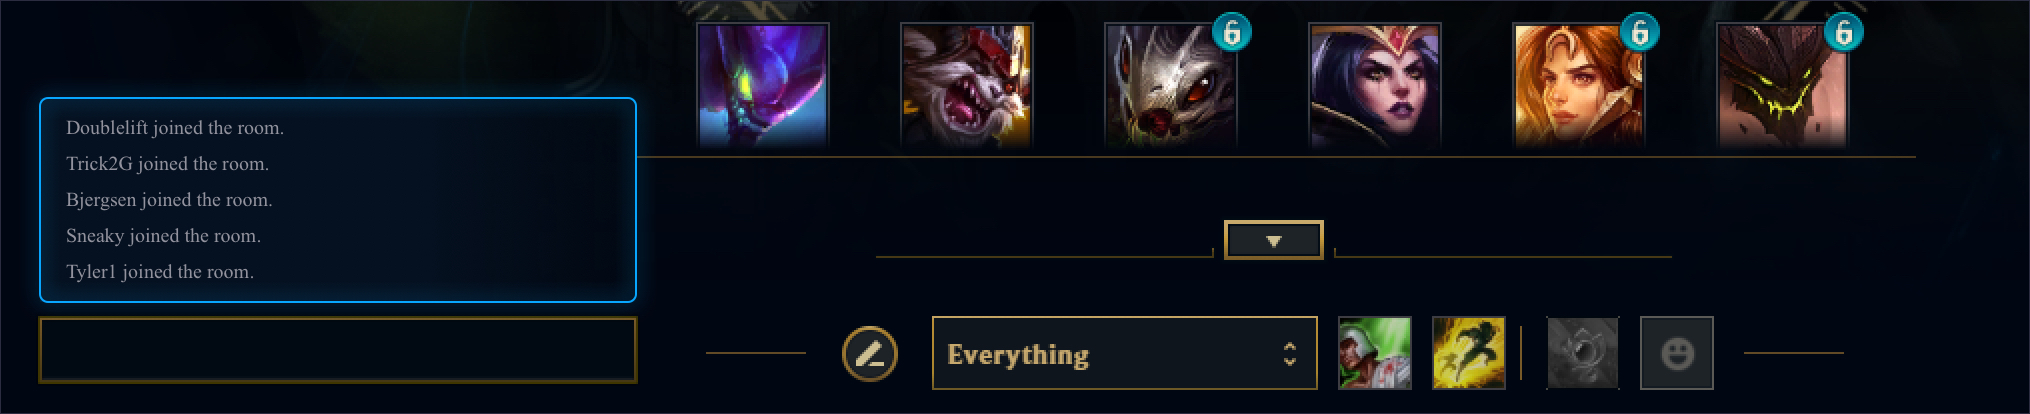 Zed Build With Highest Winrate Lol Runes Items And Skill Order